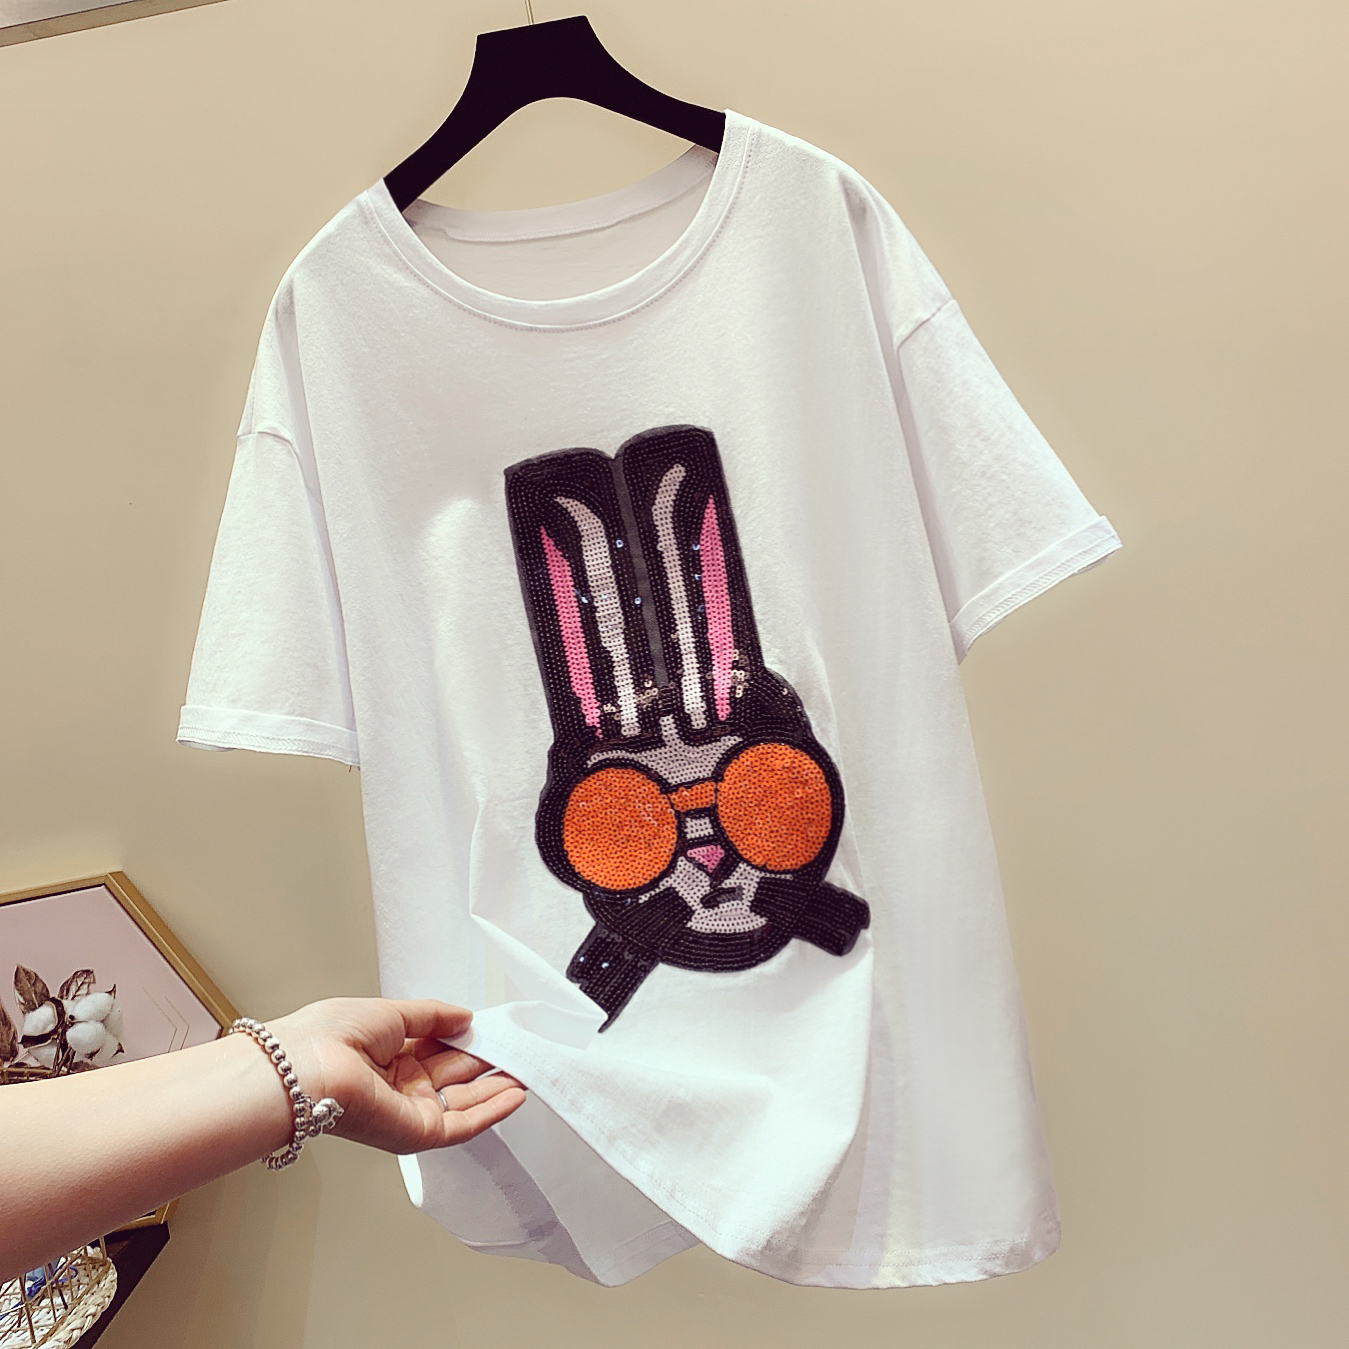 2019 Summer New Fashion Cartoon Pattern Tshirts Womens Tee Sequins Loose Short-sleeved T-shirts Woman